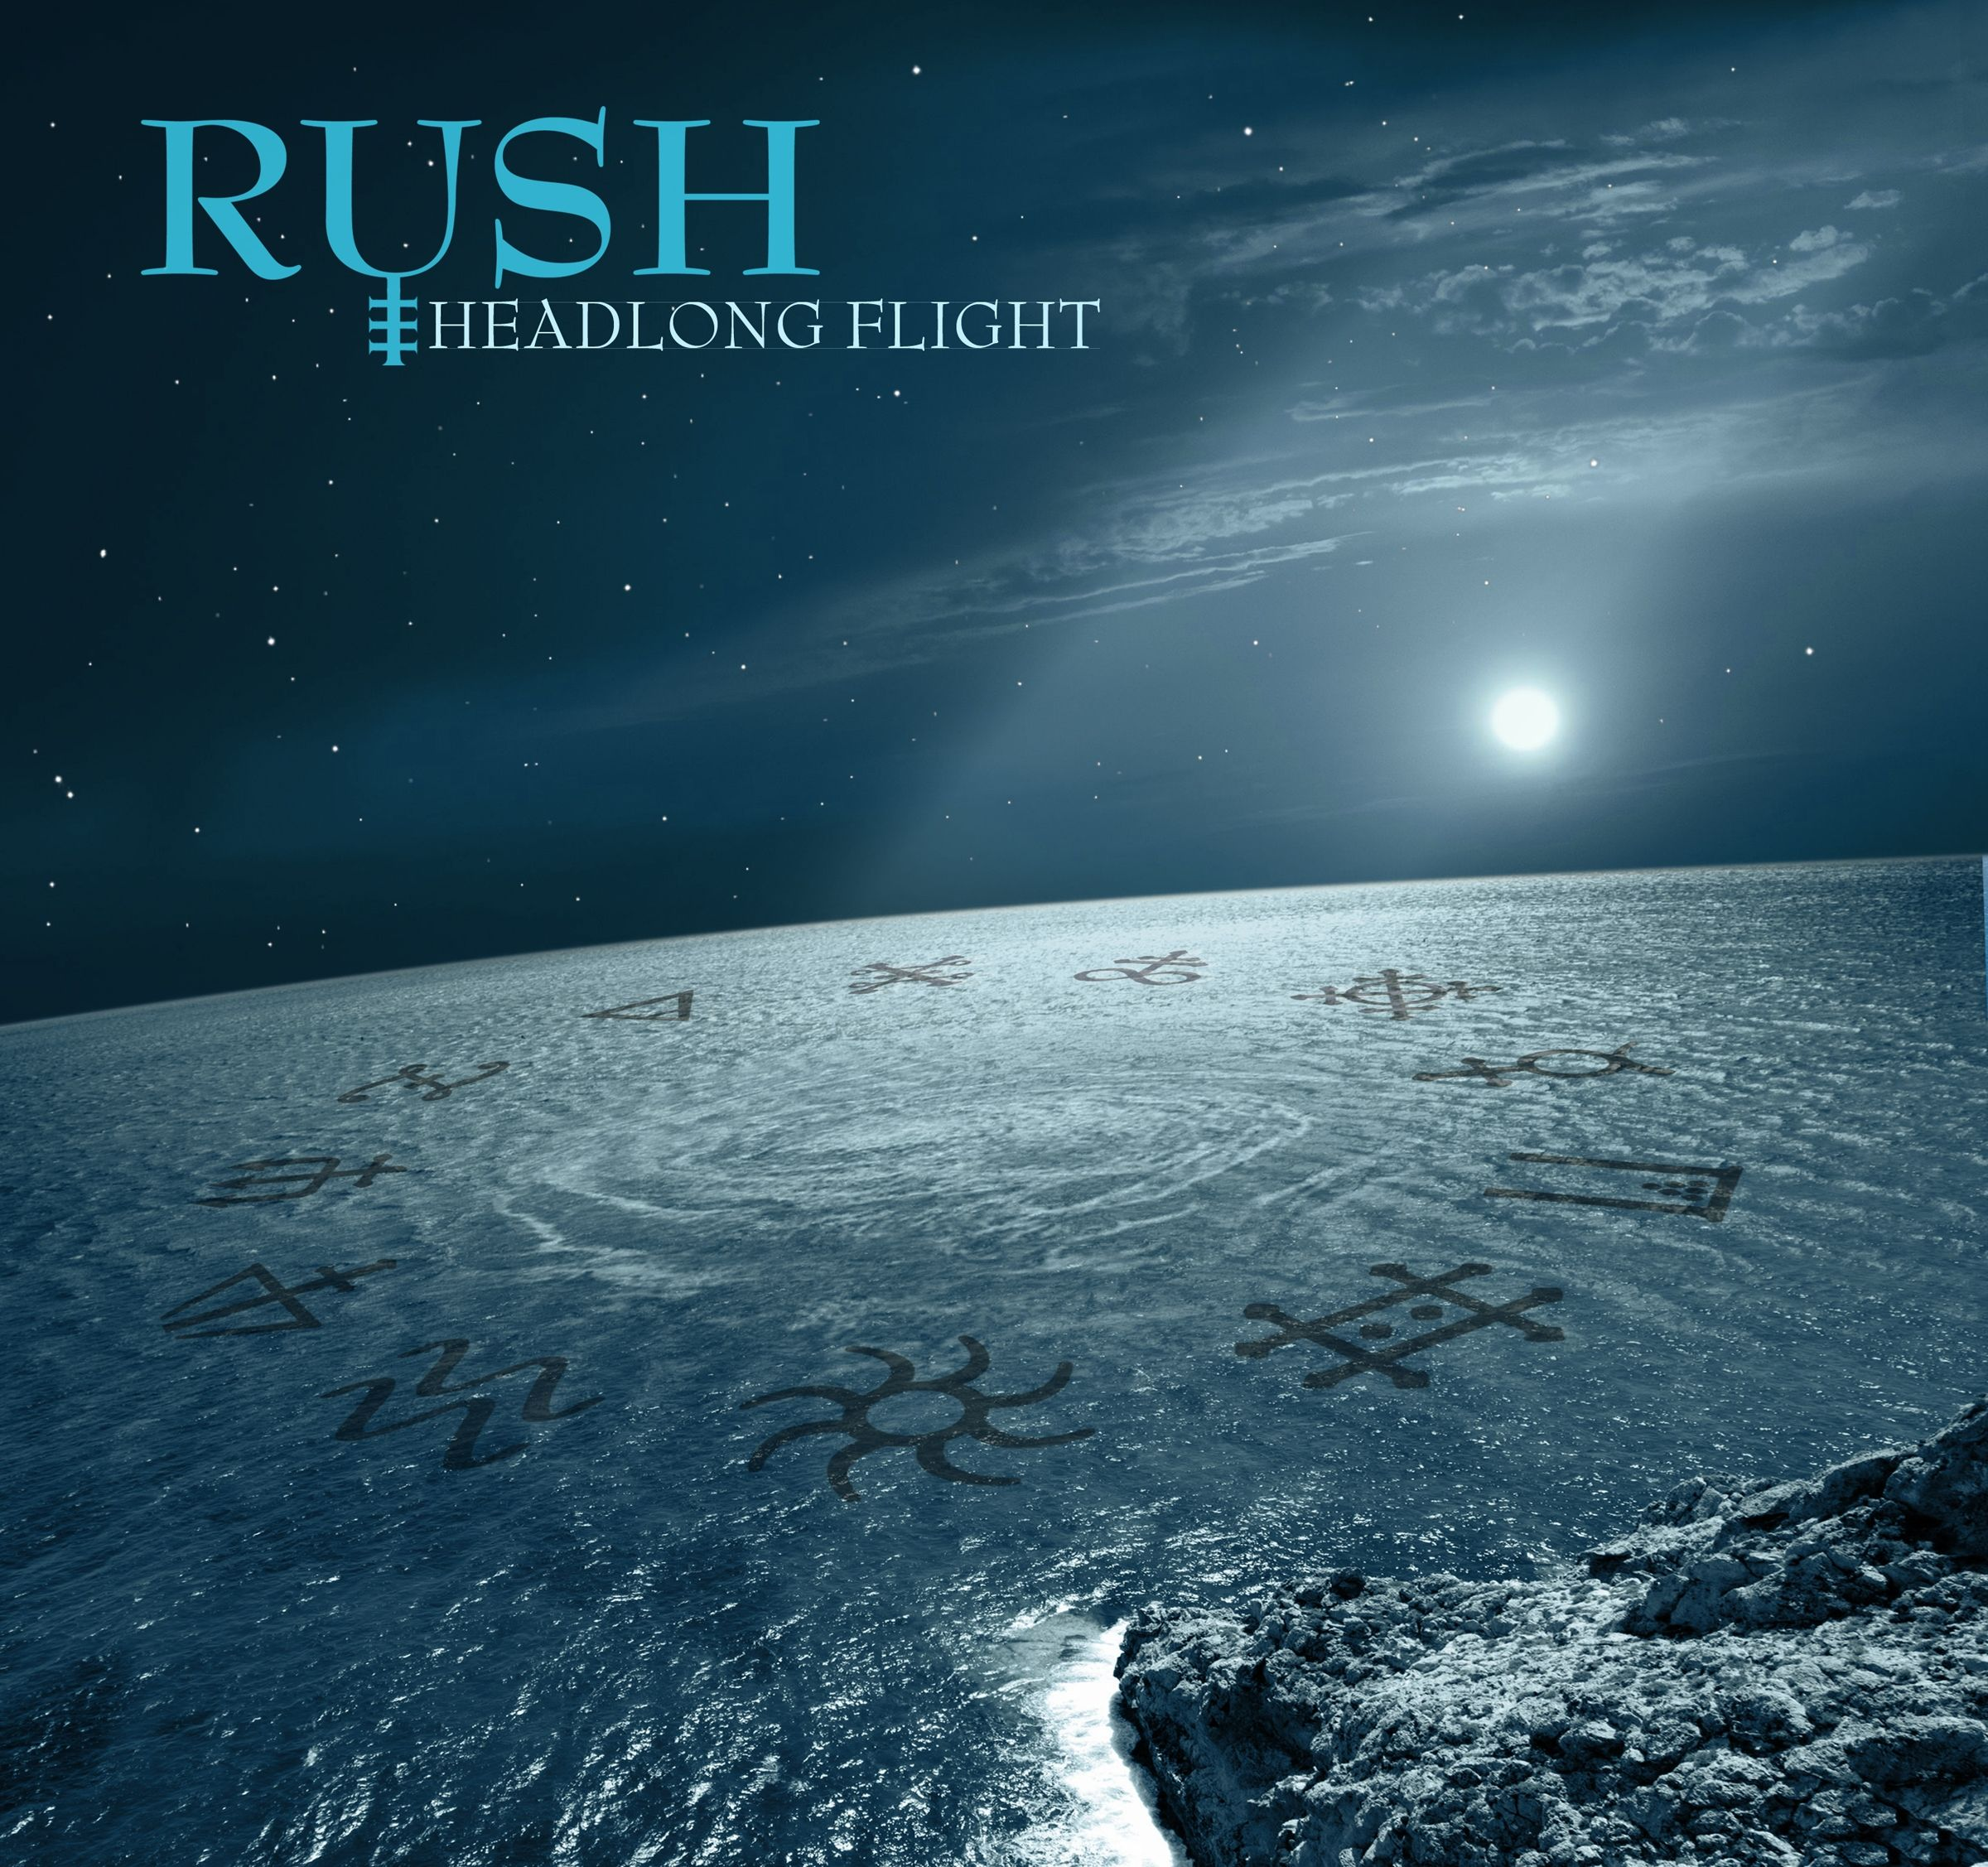 Artwork for Rush's Headlong Flight, from Clockwork Angels